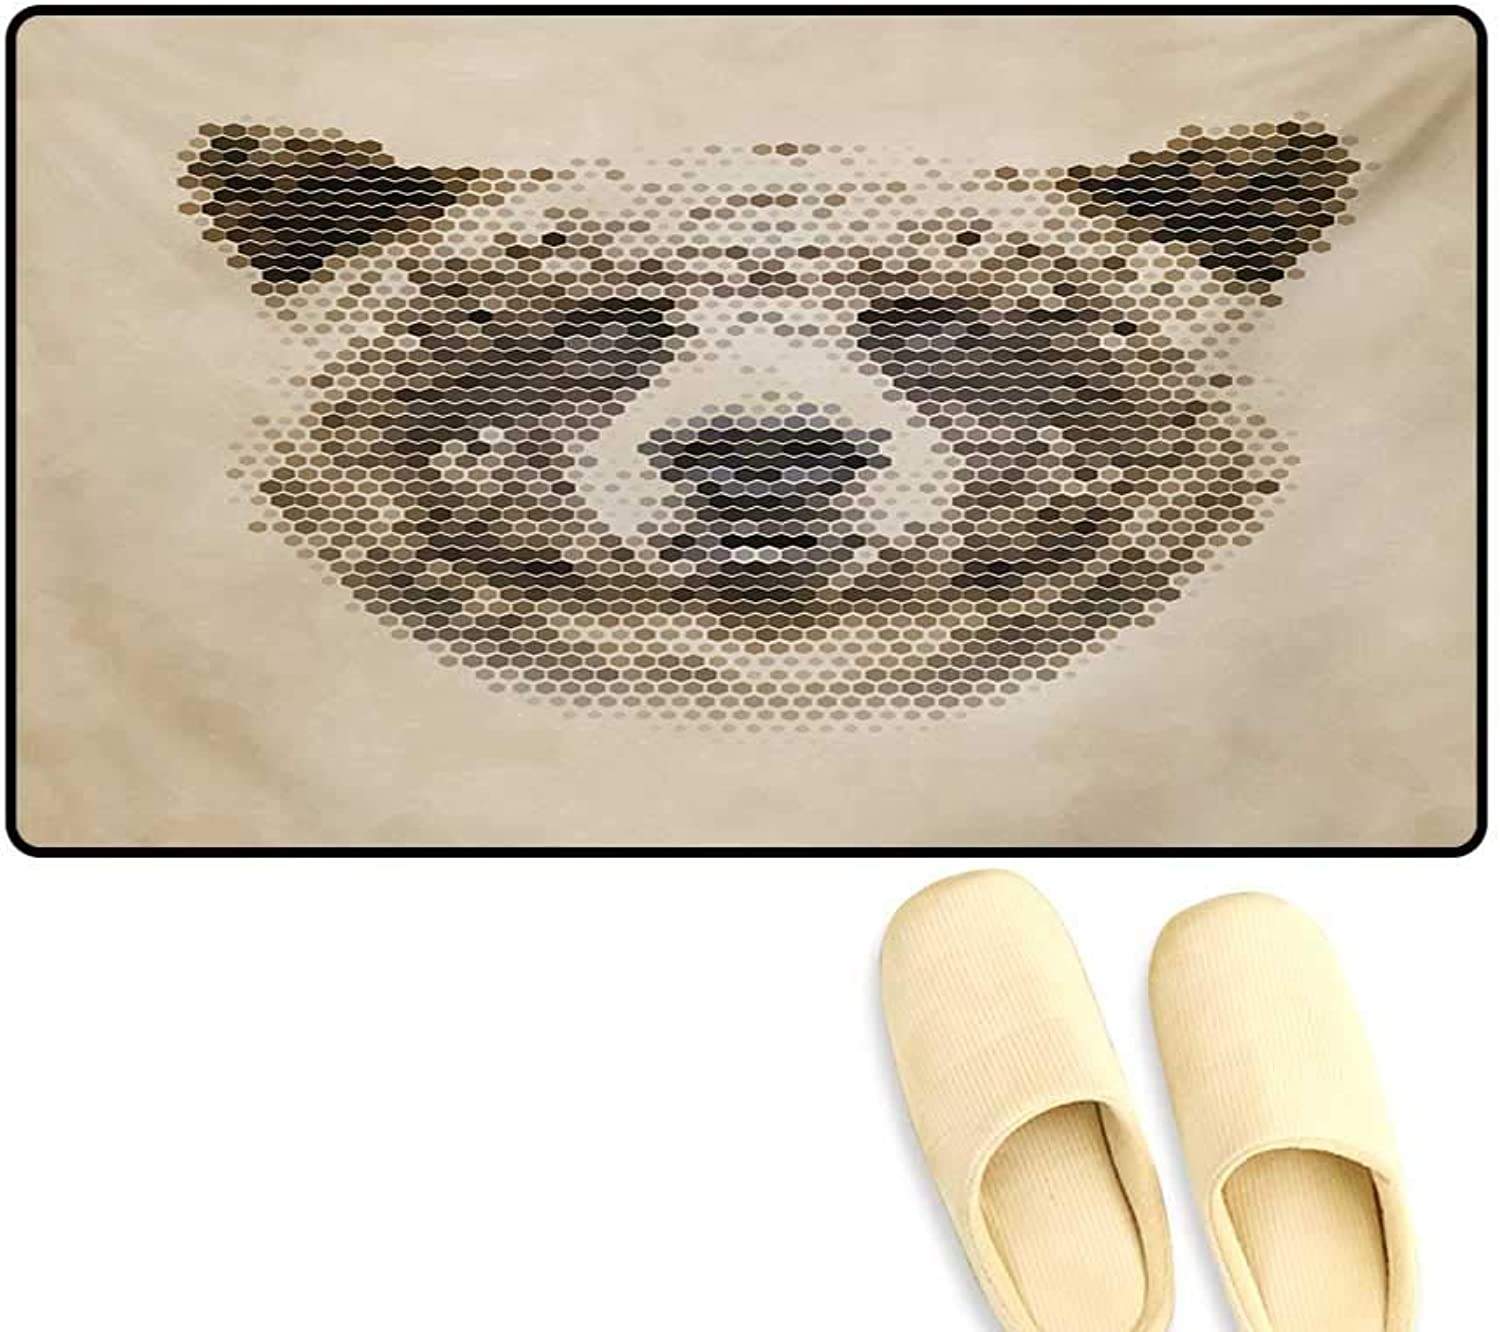 Door-mat,Wild Animal Head with Hexagonal Dots bluerry Looking Portrait Vintage Geometric Modern,Door Mats for Inside Bathroom Mat Non Slip,Tan Brown,24 x36